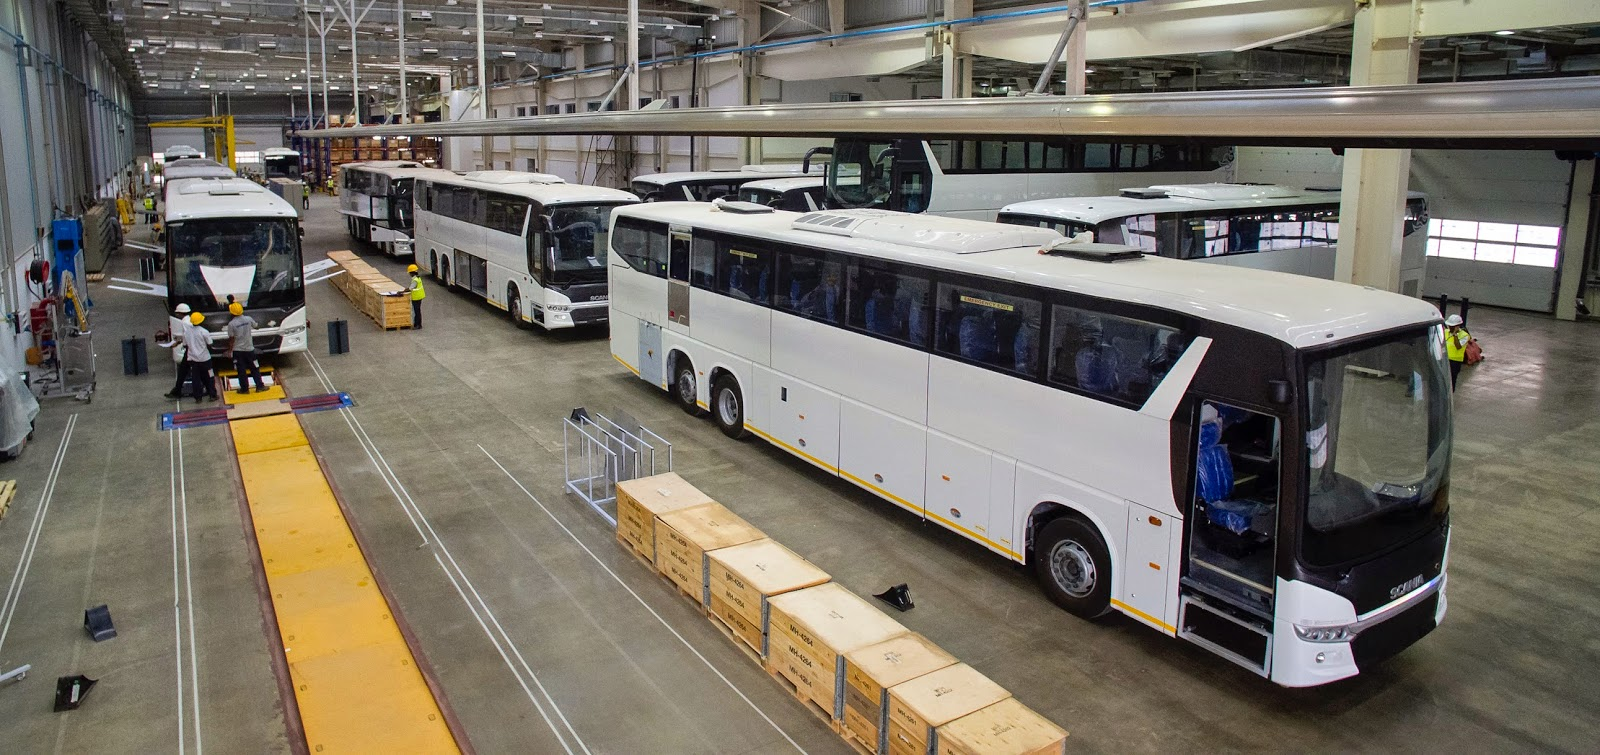 Scania Bus Plant Bangalore India - A virtual visit | Biswajit SVM Chaser